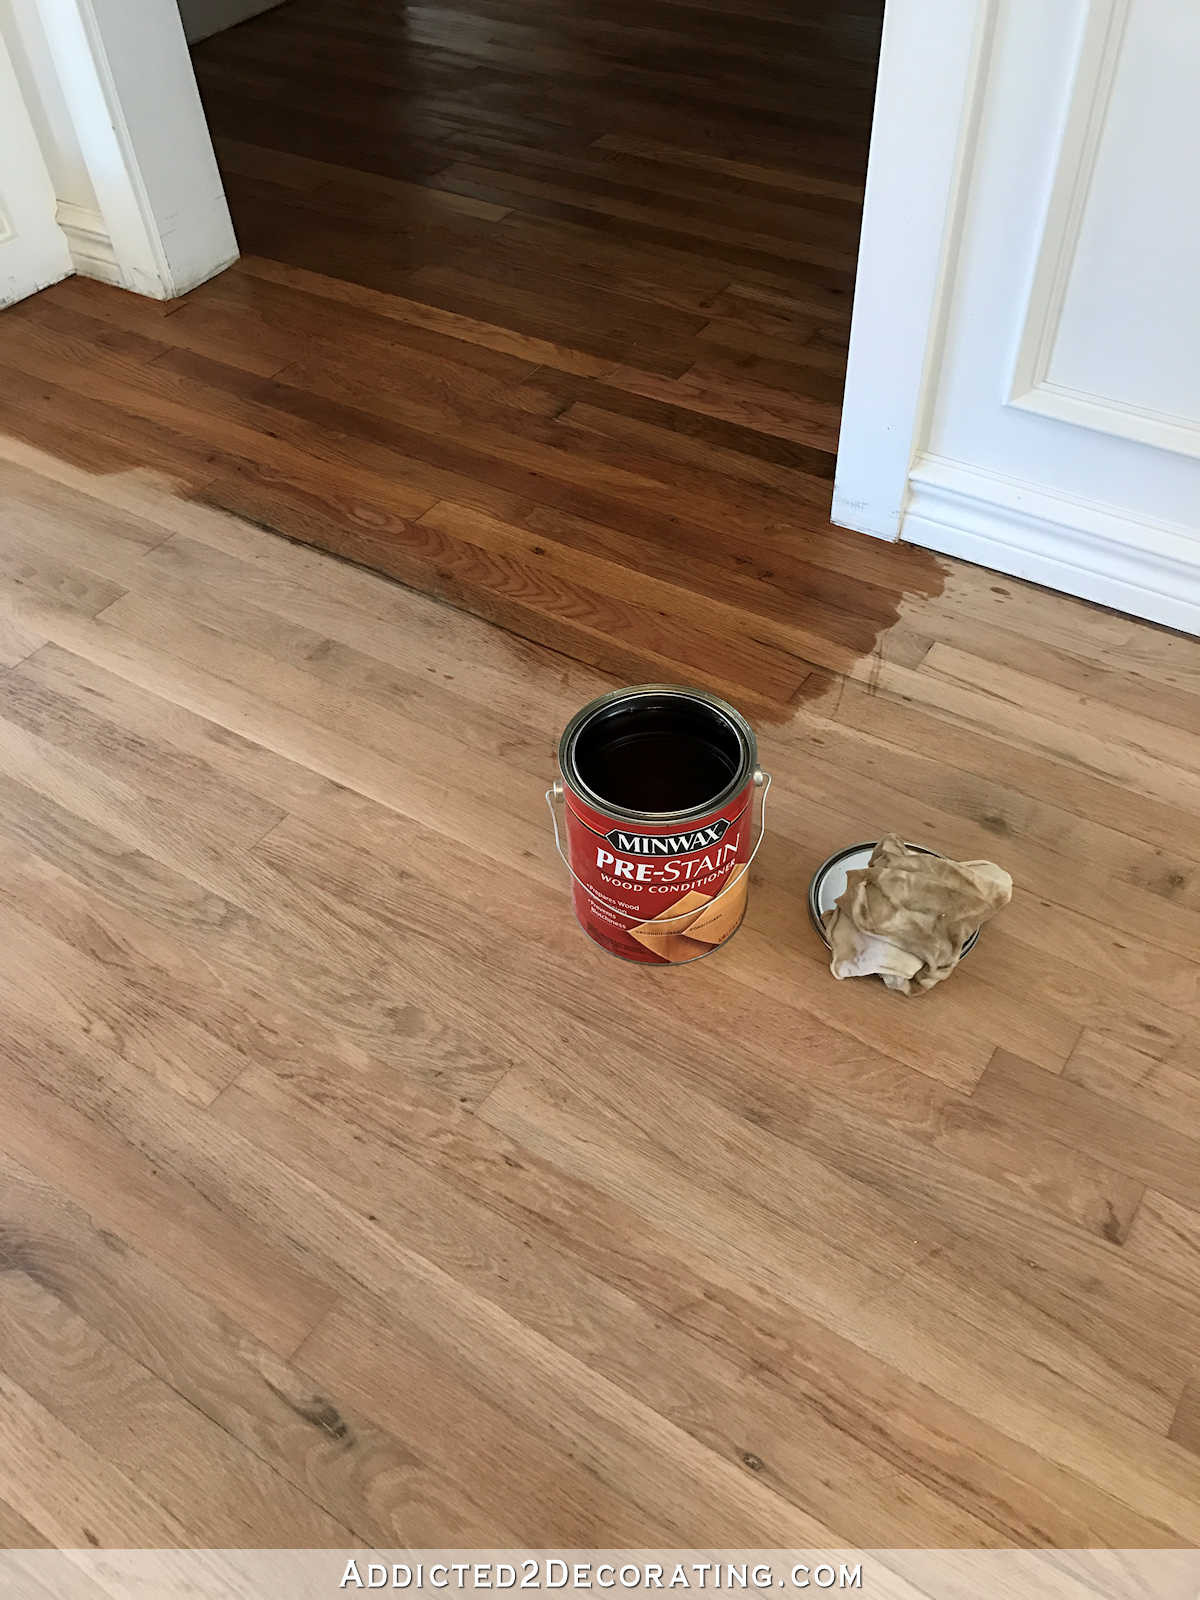 Hardwood Floor Finishes Matte Vs Satin Of Adventures In Staining My Red Oak Hardwood Floors Products Process with Staining Red Oak Hardwood Floors 1 Conditioning the Wood with Minwax Pre Stain